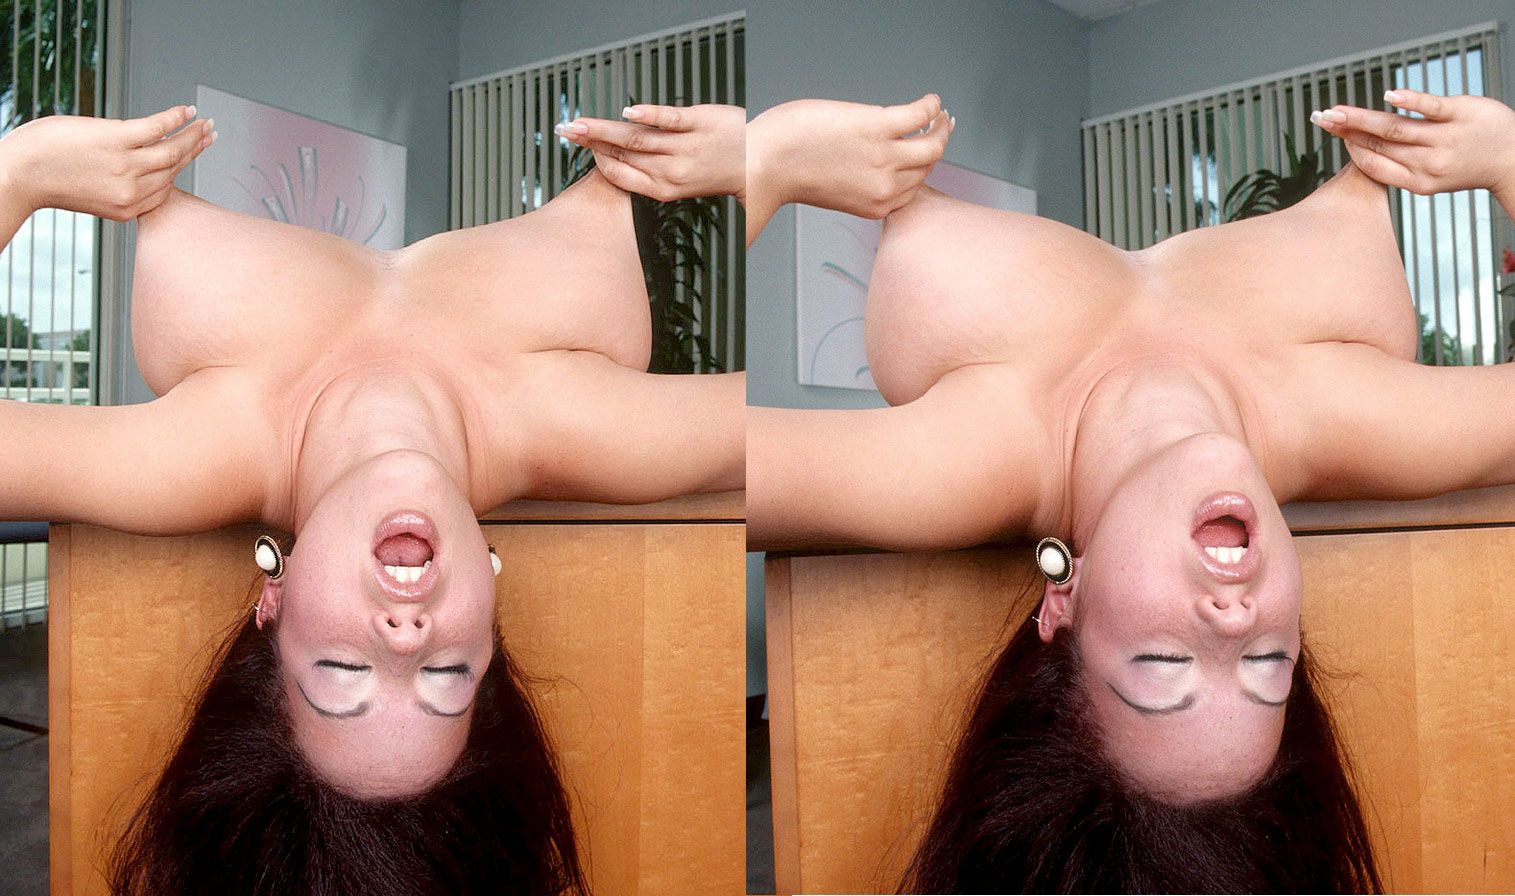 Stereoscopic xxx view